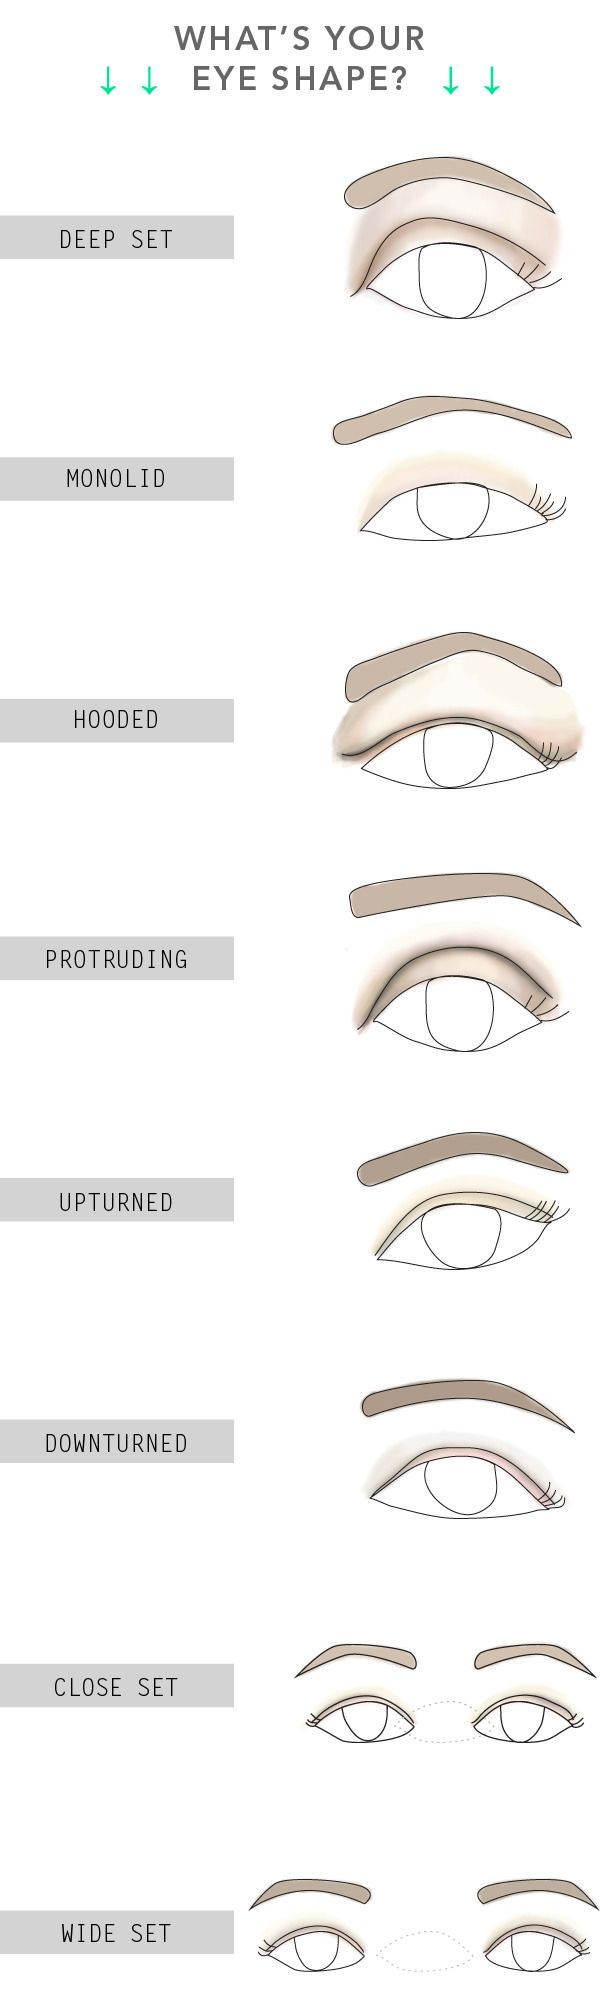 What's Your Eye Shape?: